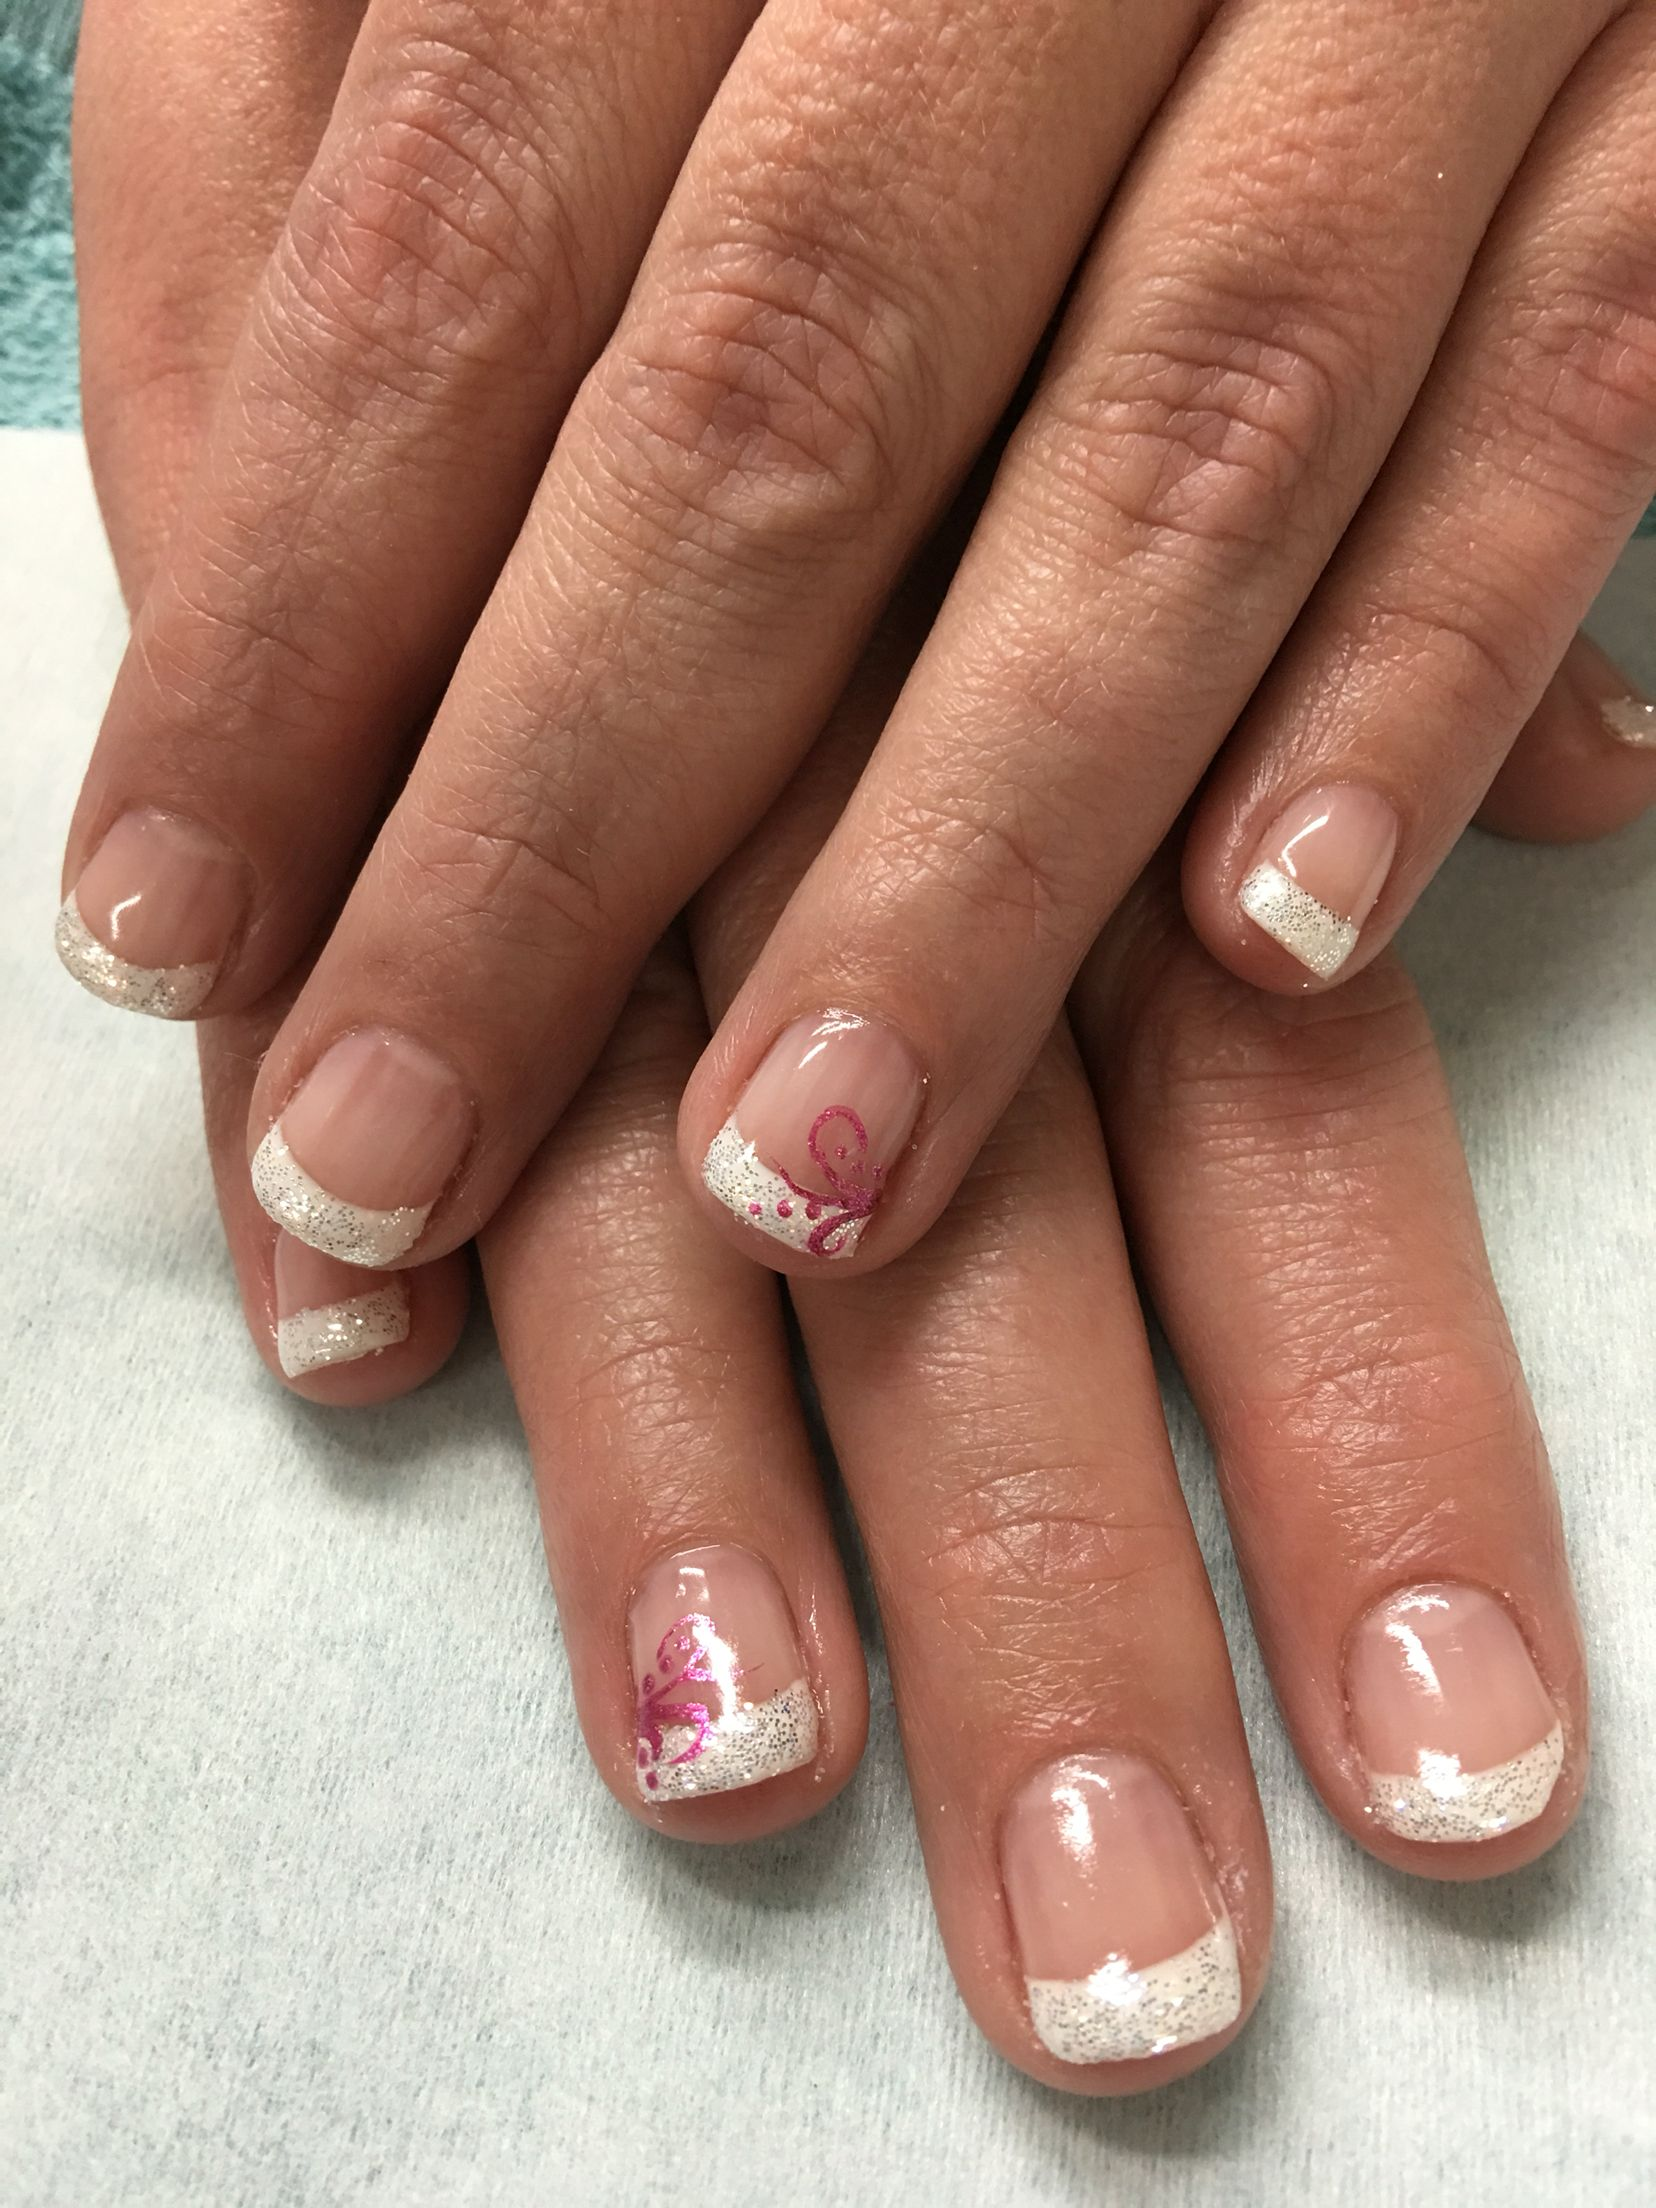 Sparkle white French gel nails with pink accents | Gel Nail designs ...